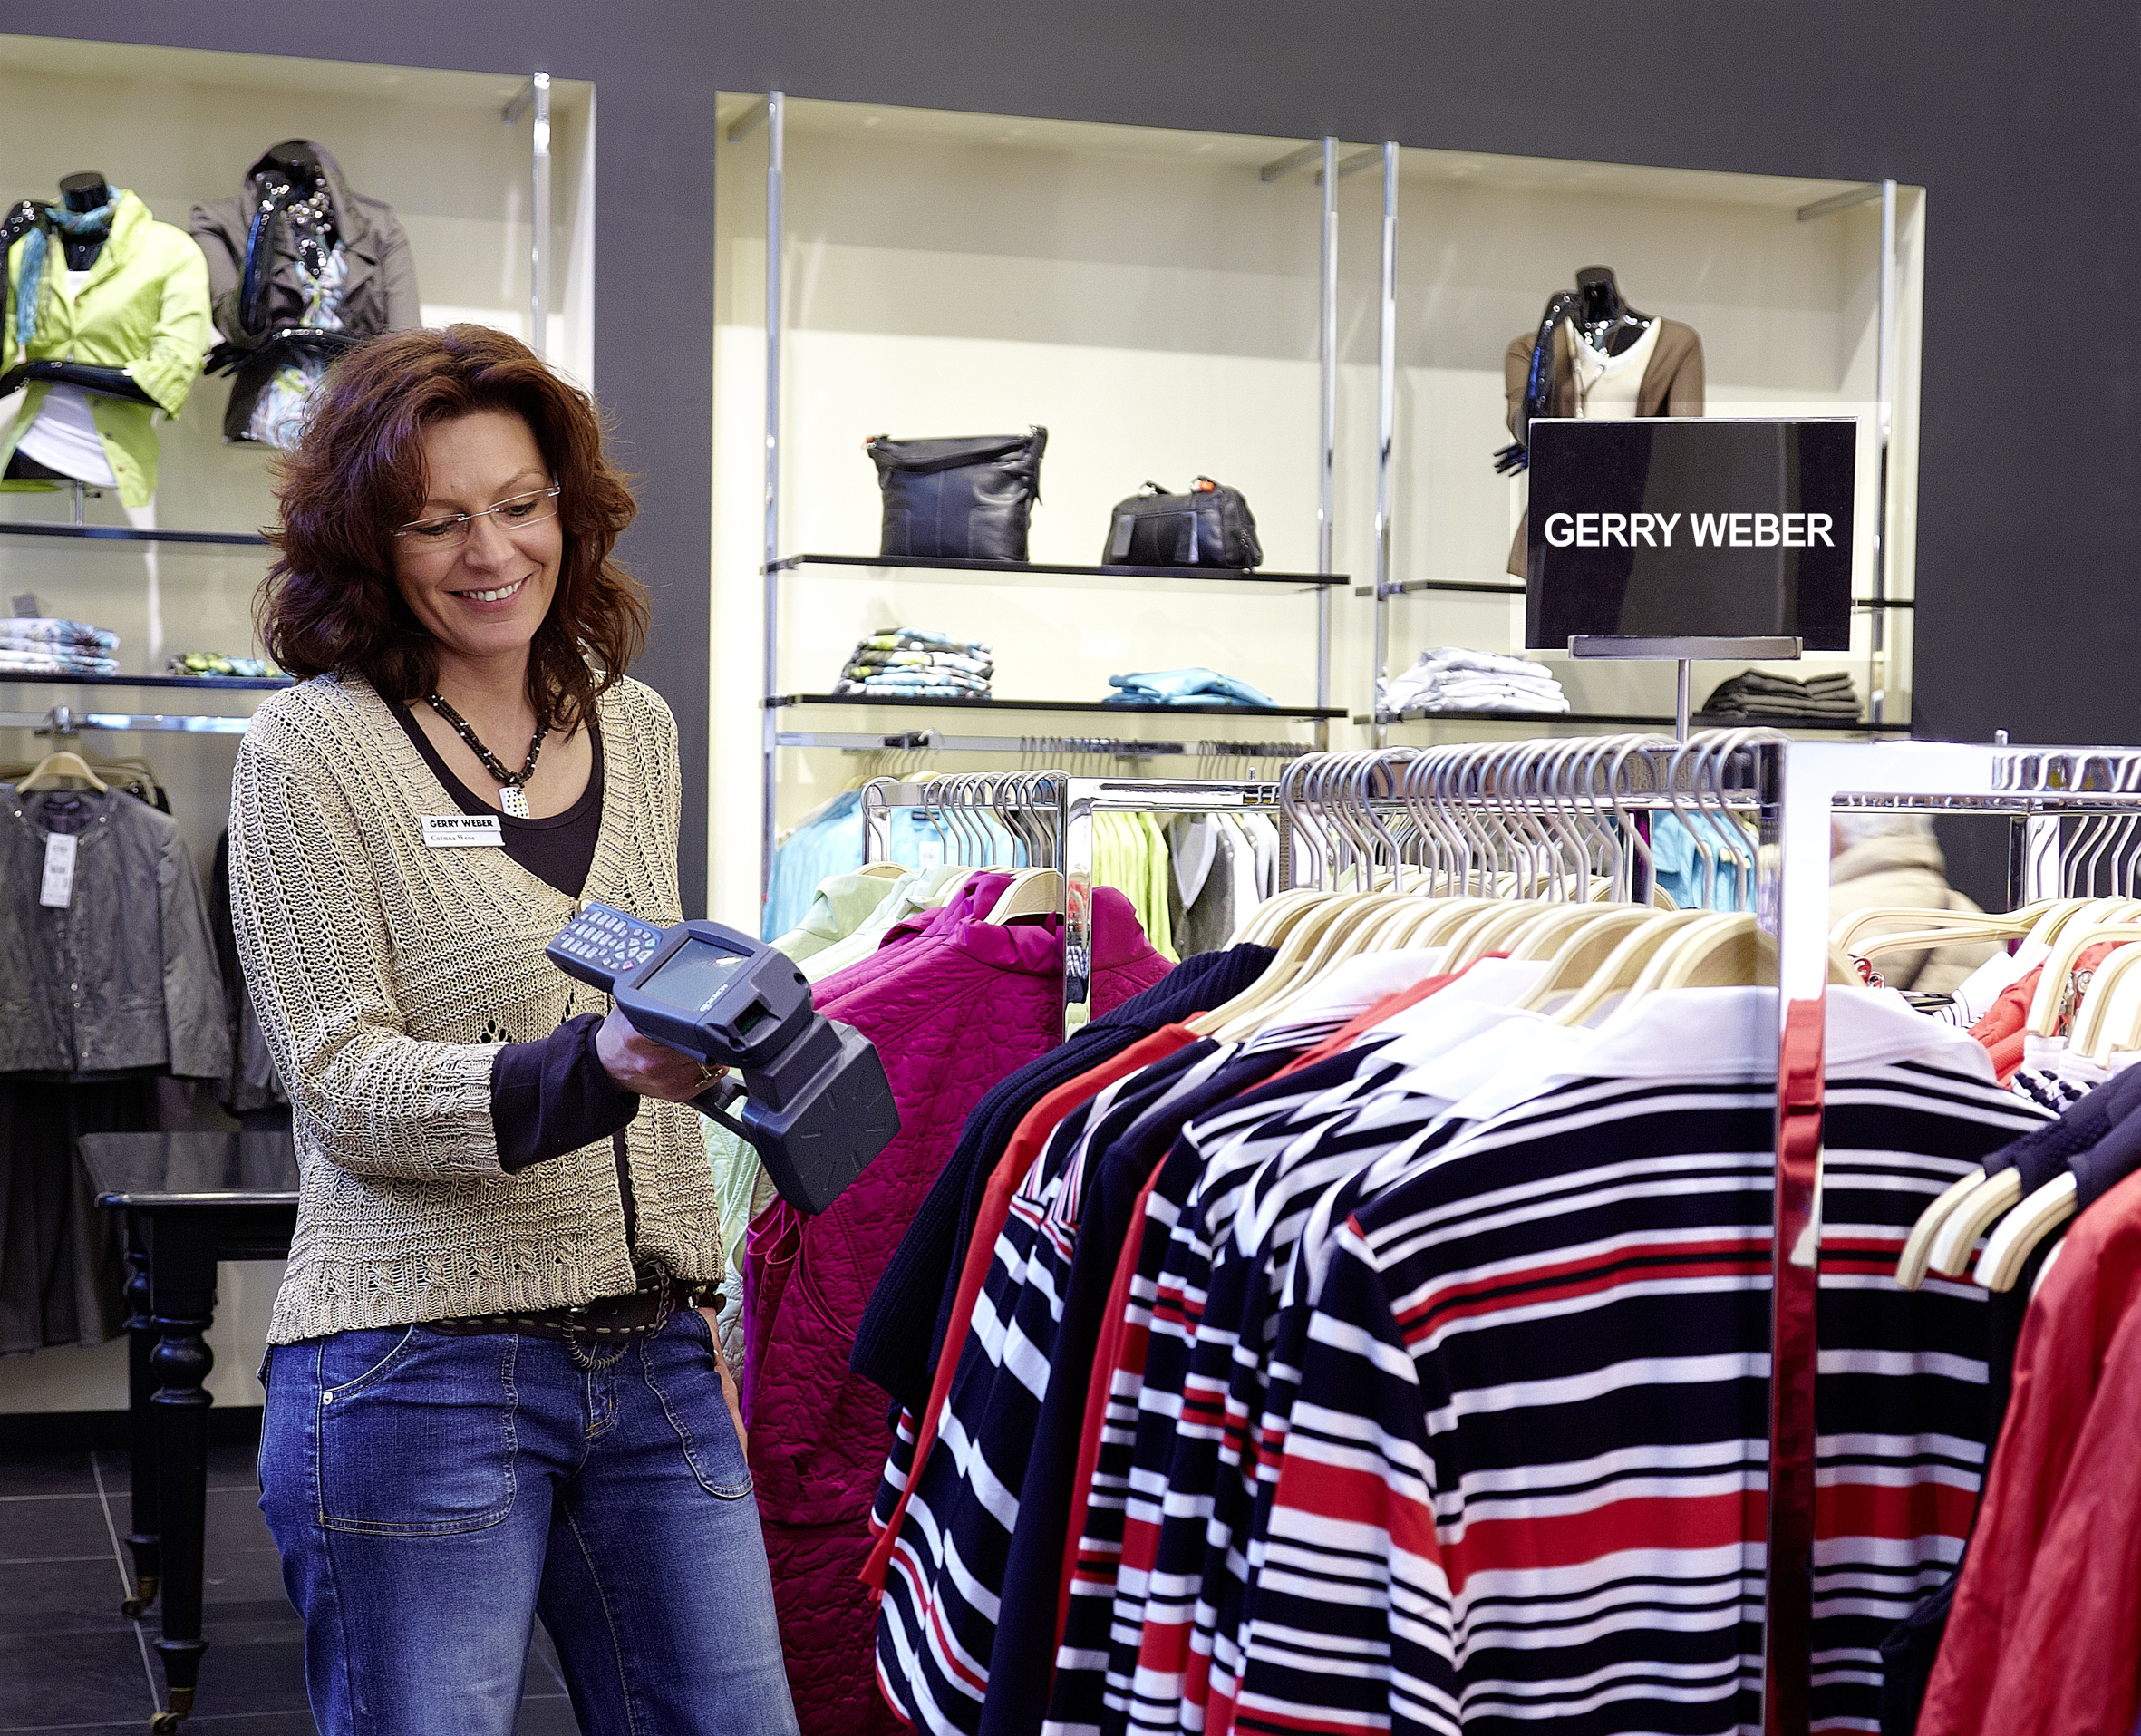 a sales assistant using RFID within a retail store